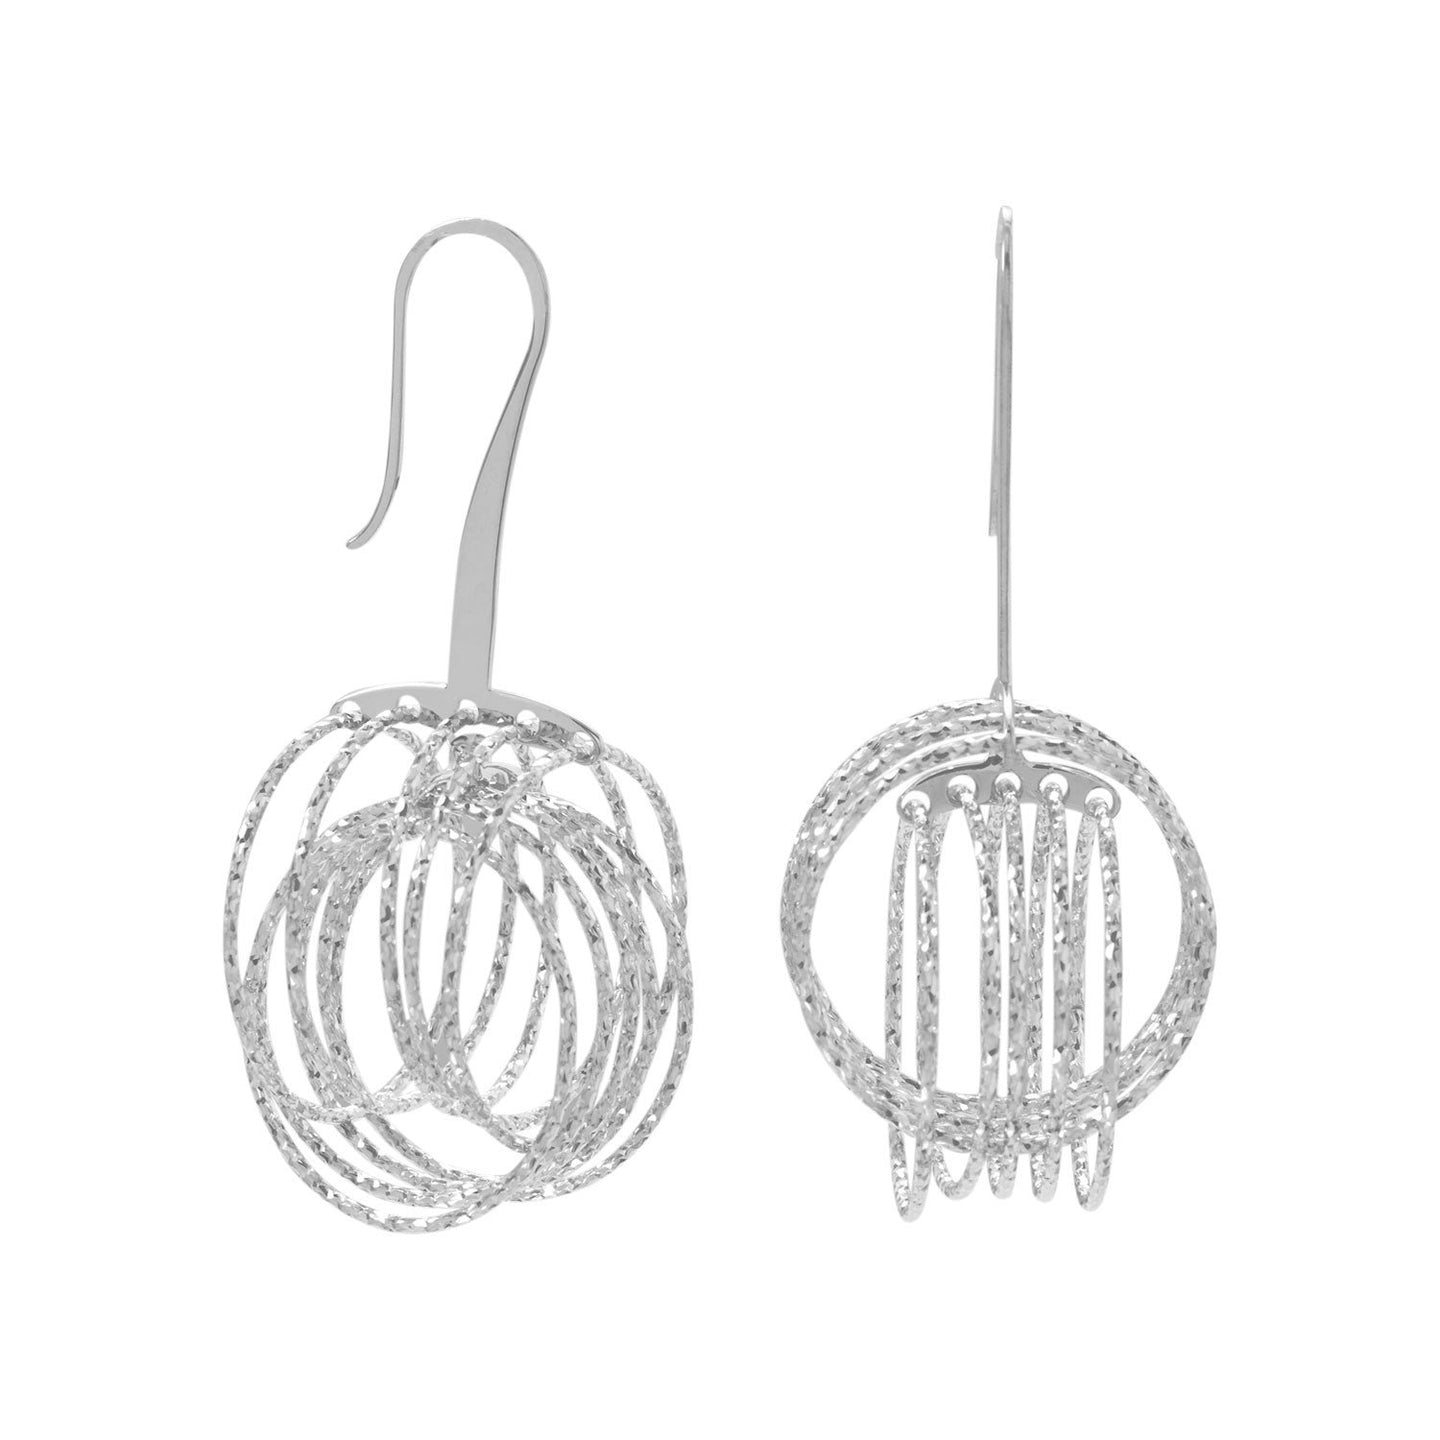 Made in Italy Rhodium Plated 3D Orbital Rings Hoops Earrings Italian Jewelry - Shop Italy and Sicily Gifts Made in Italy Italian Themed